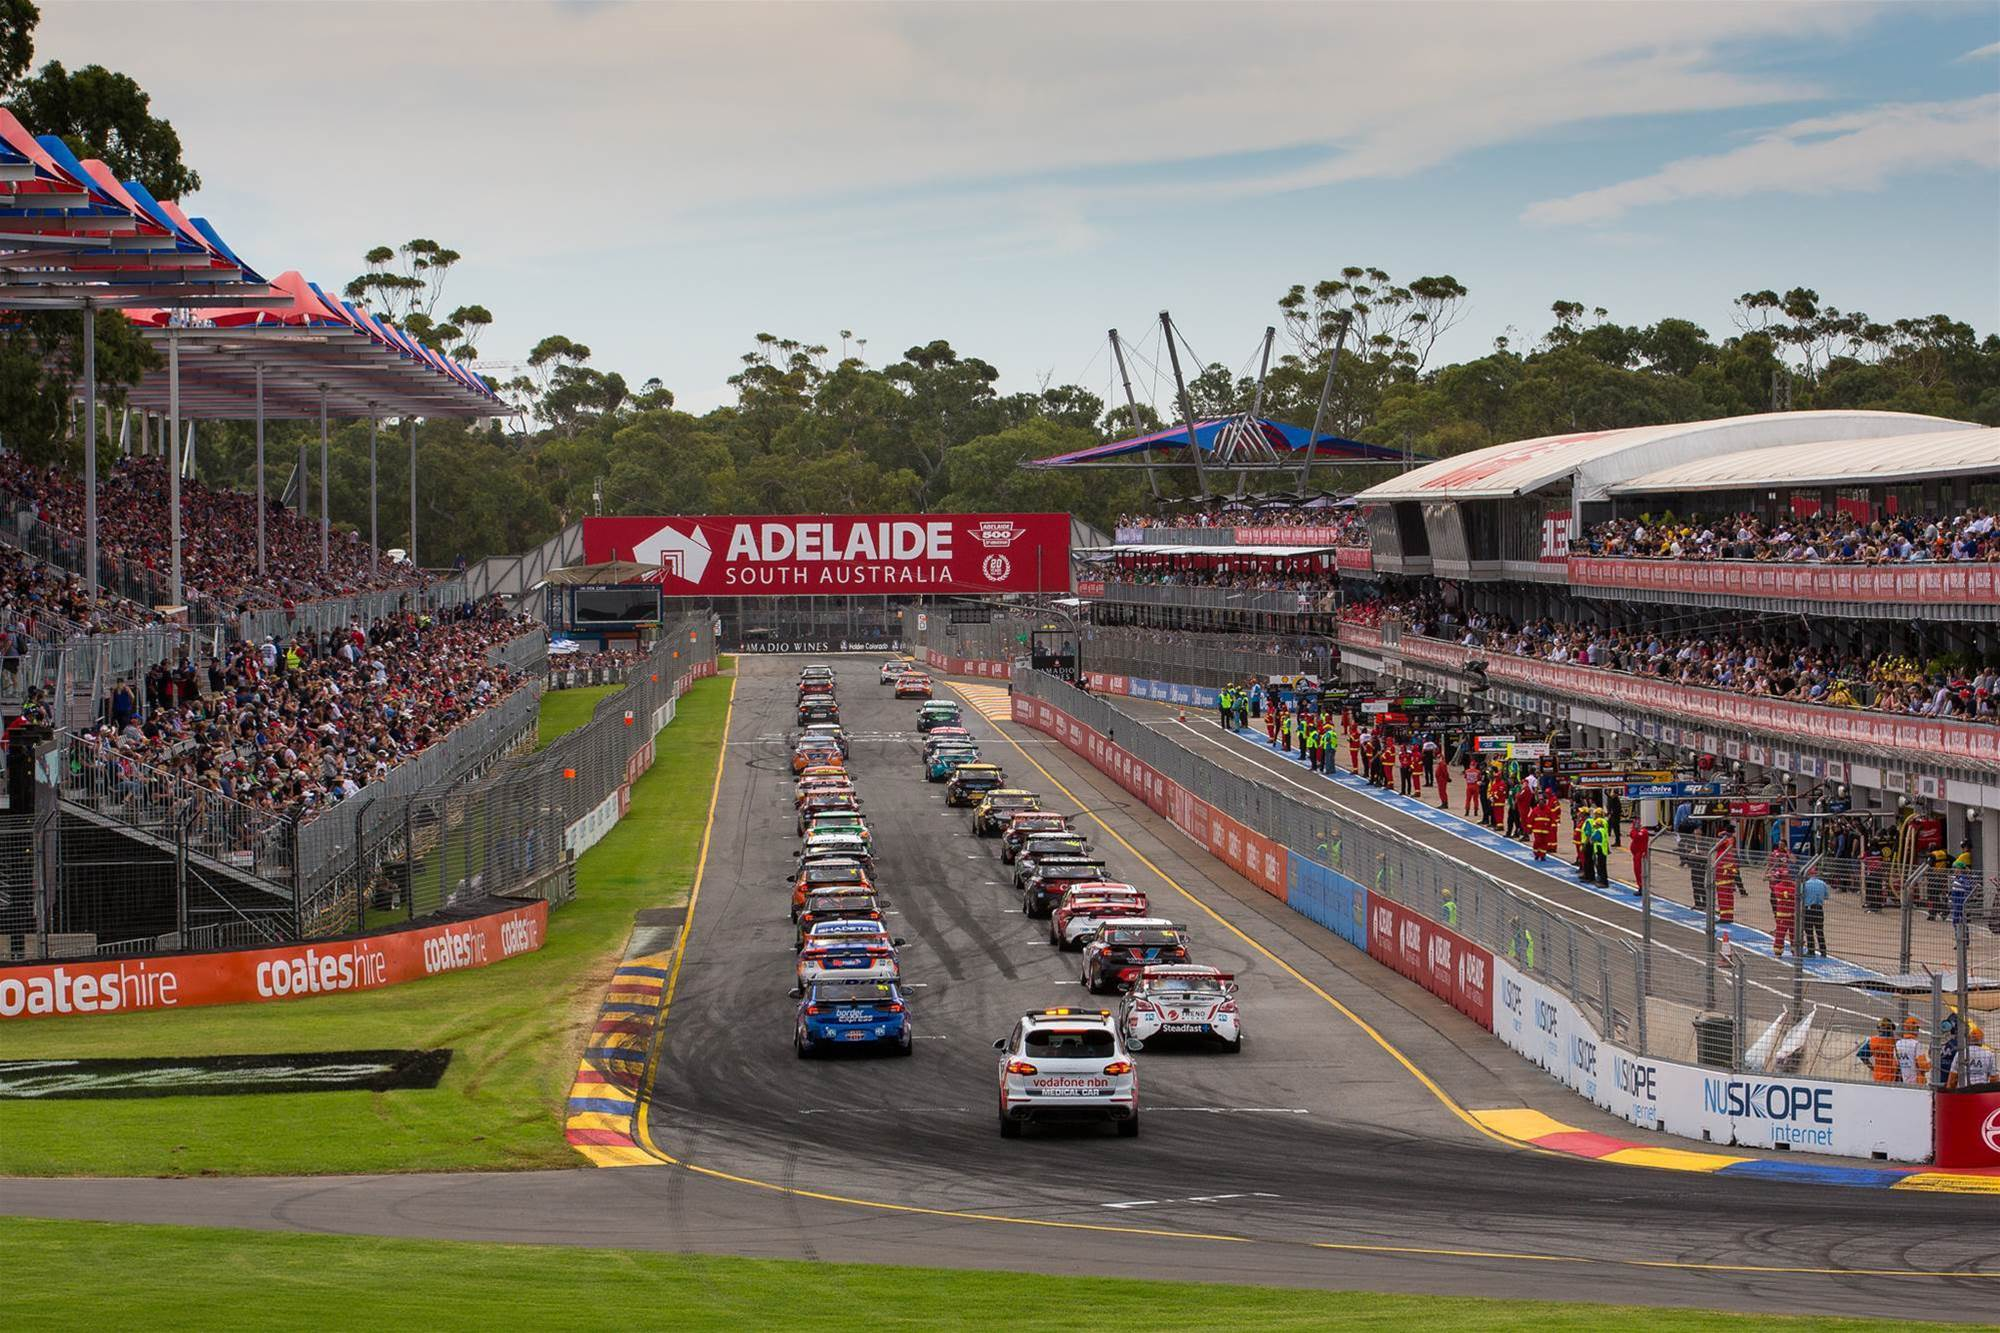 pic gallery: on the grid at the Adelaide 500